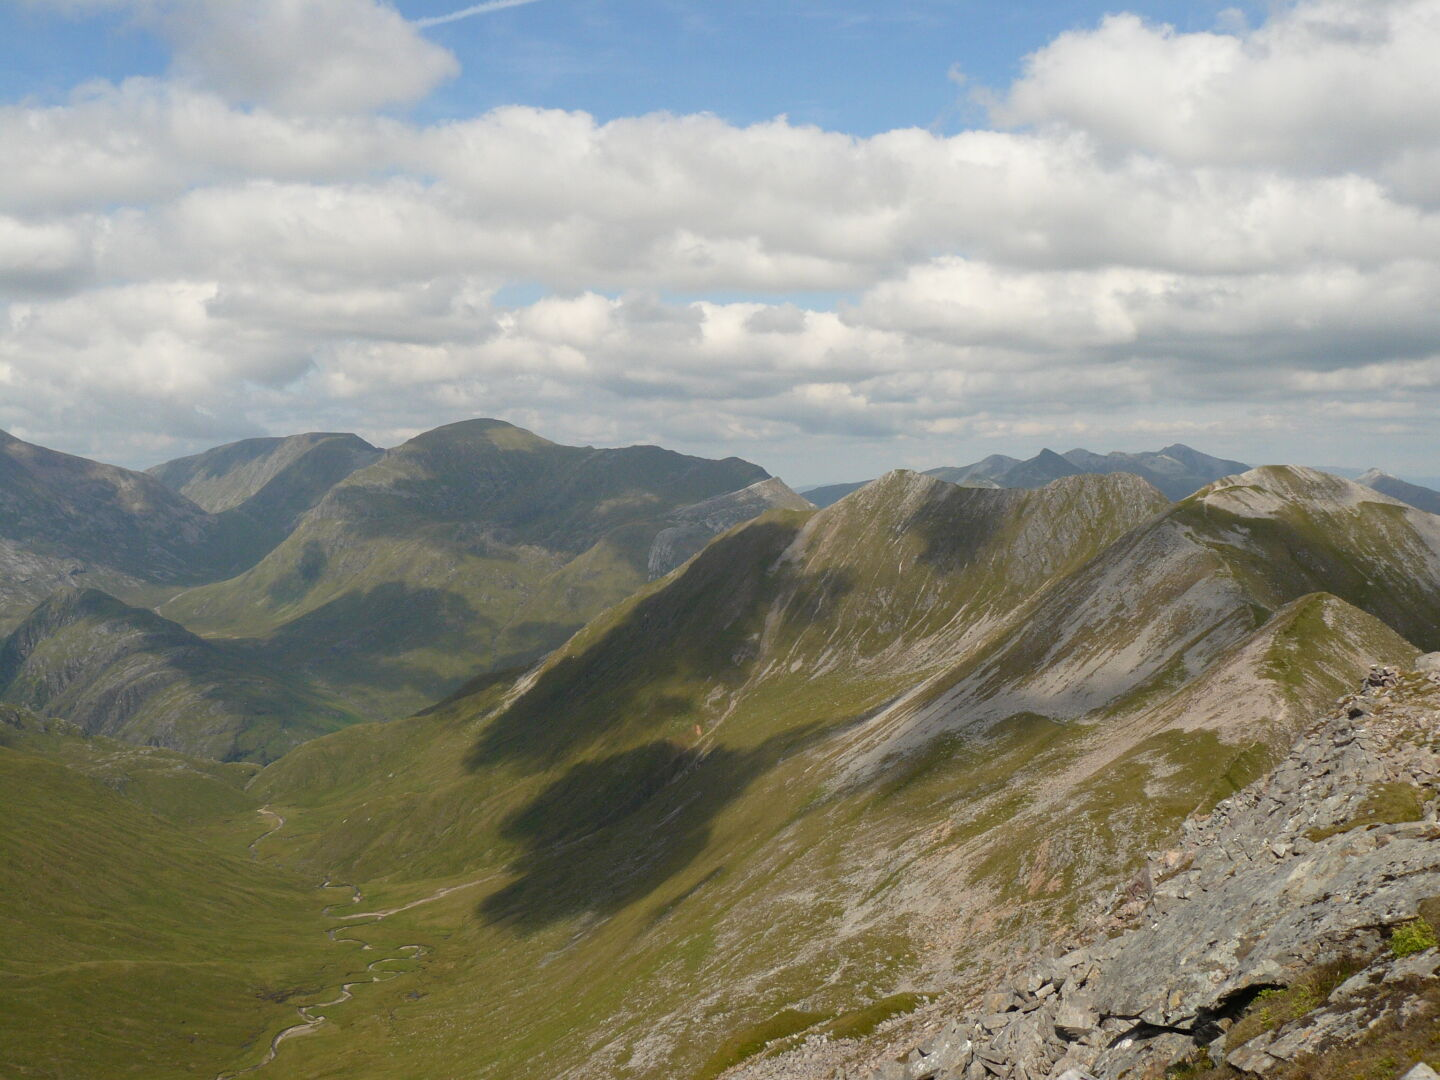 View towards Stob Coire a' Chàirn